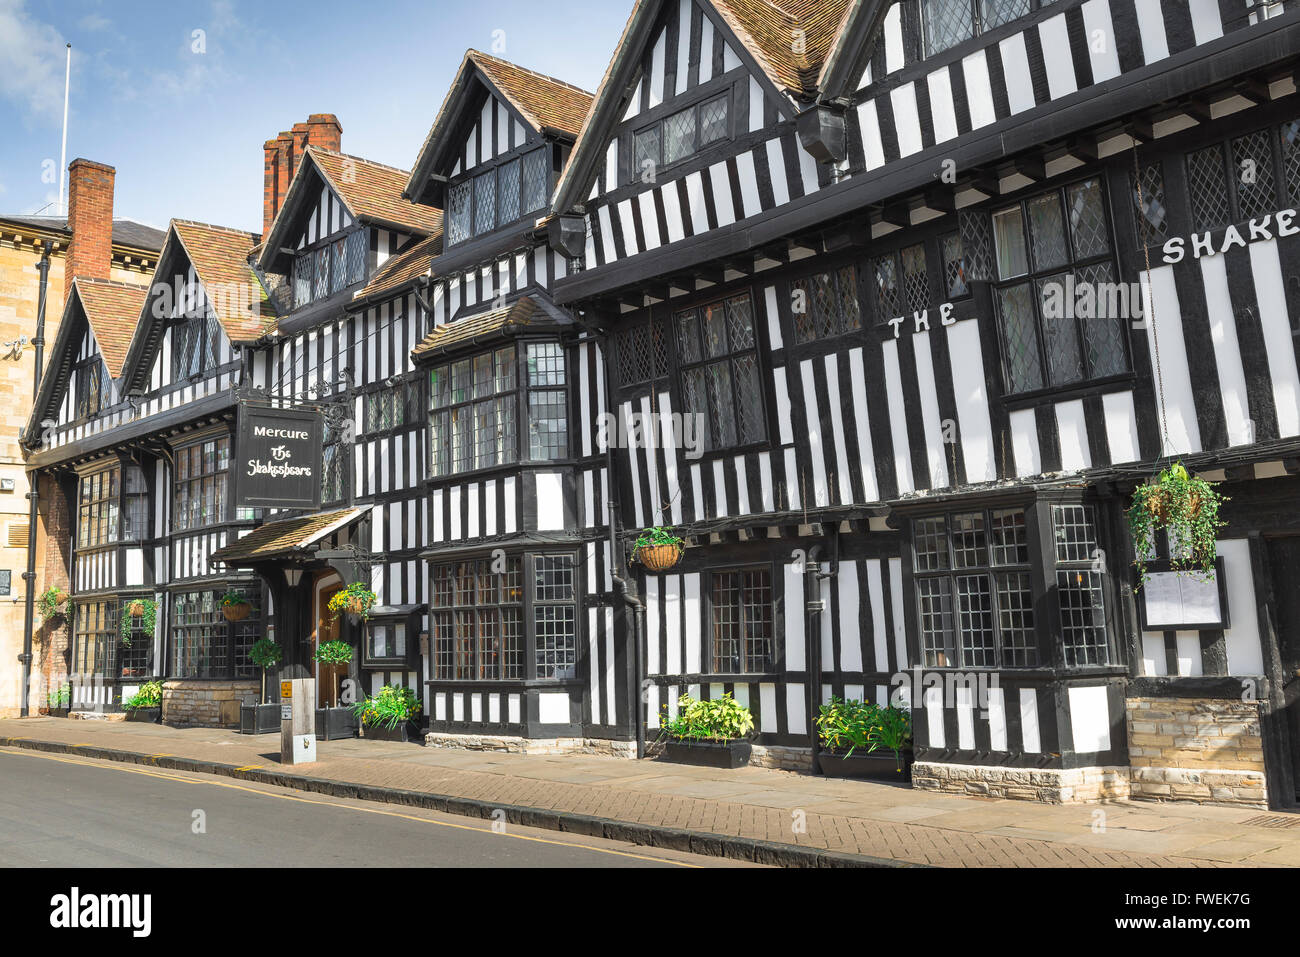 The Shakespeare Hostelrie hotel in Chapel Street, Stratford Upon Avon, England. - Stock Image